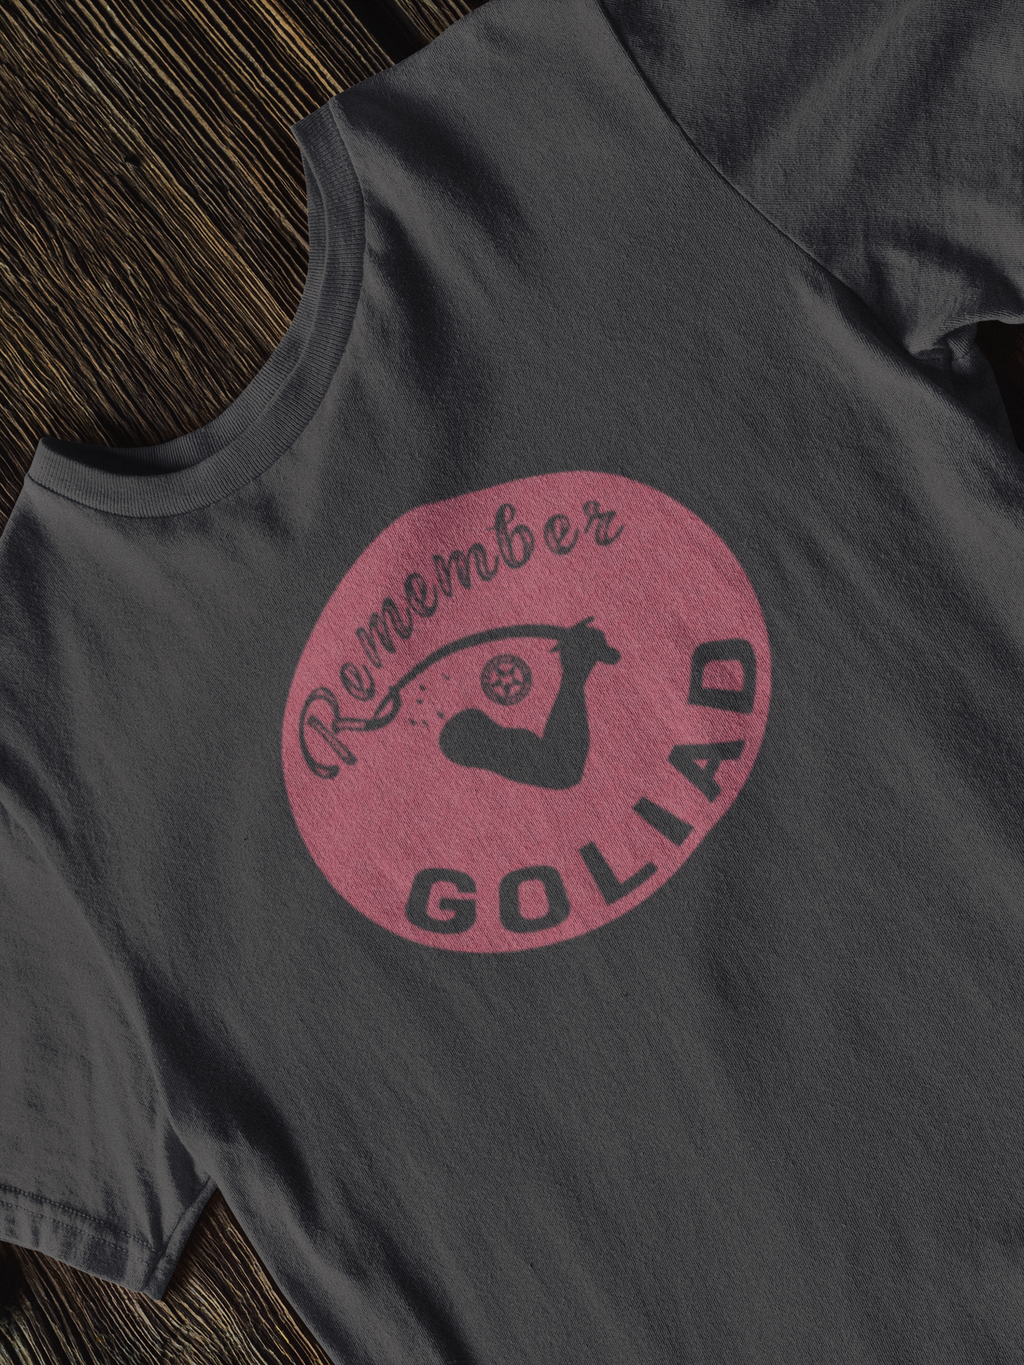 Remember Goliad shirt